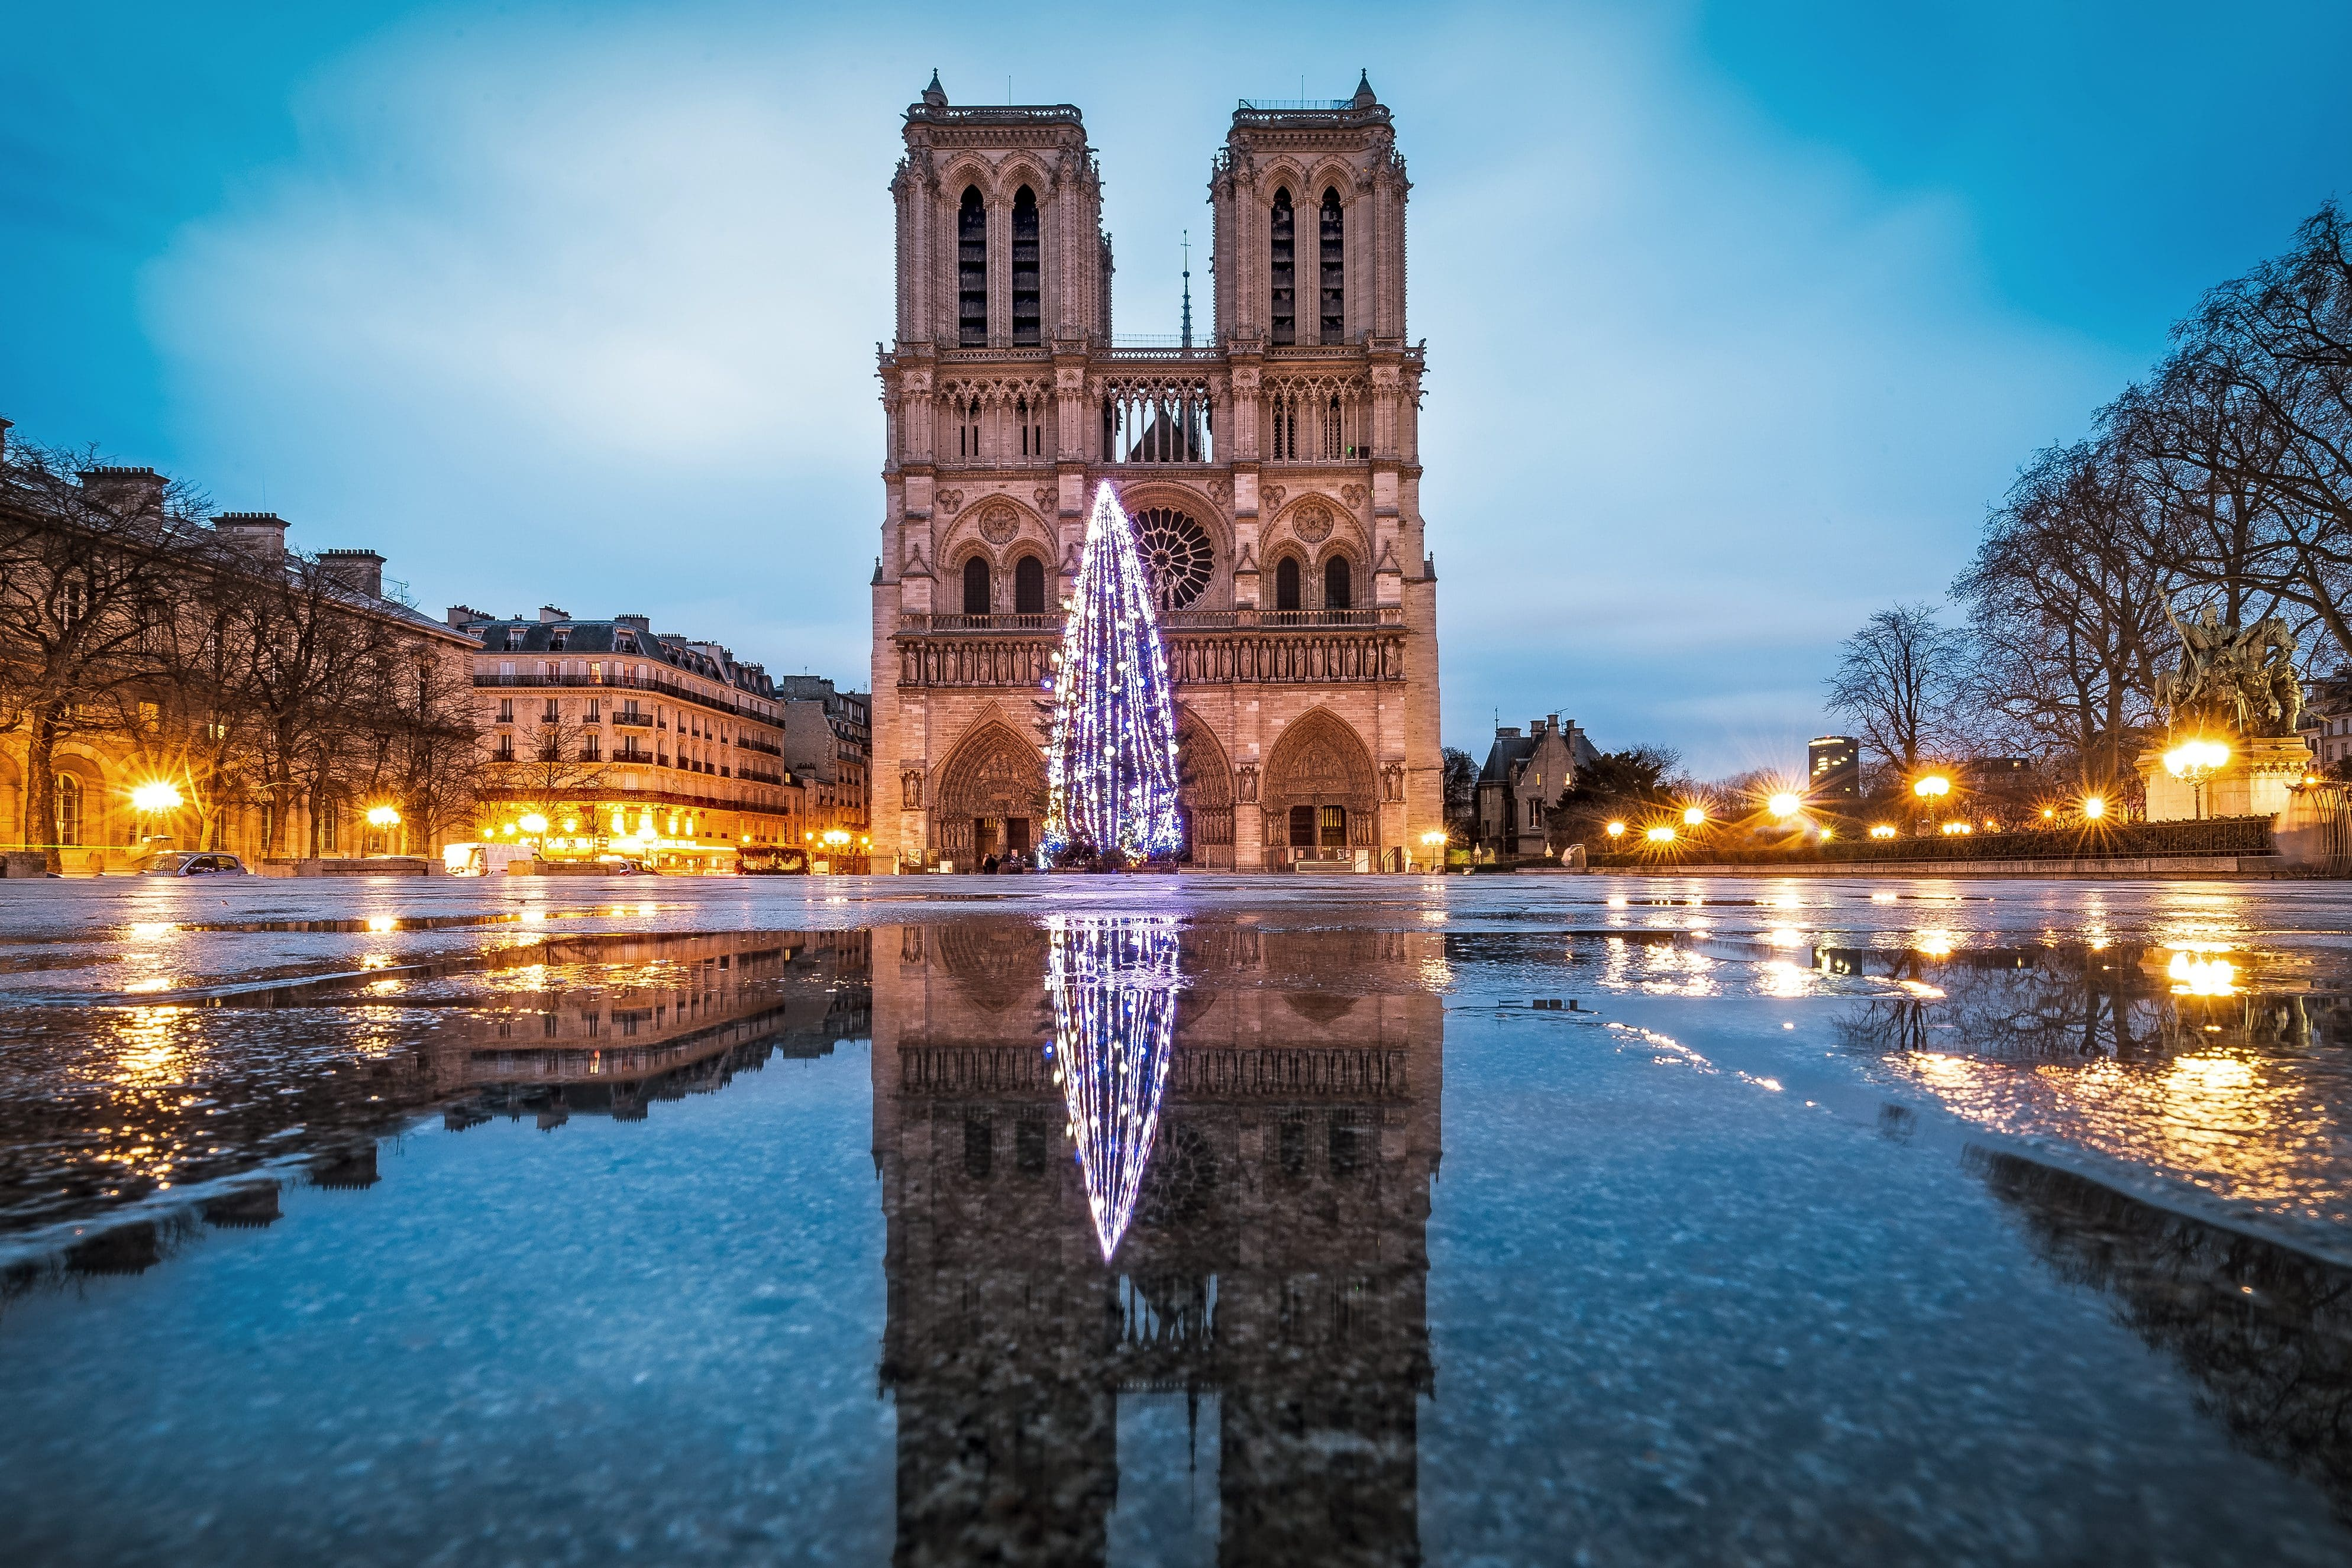 Paris during the holidays